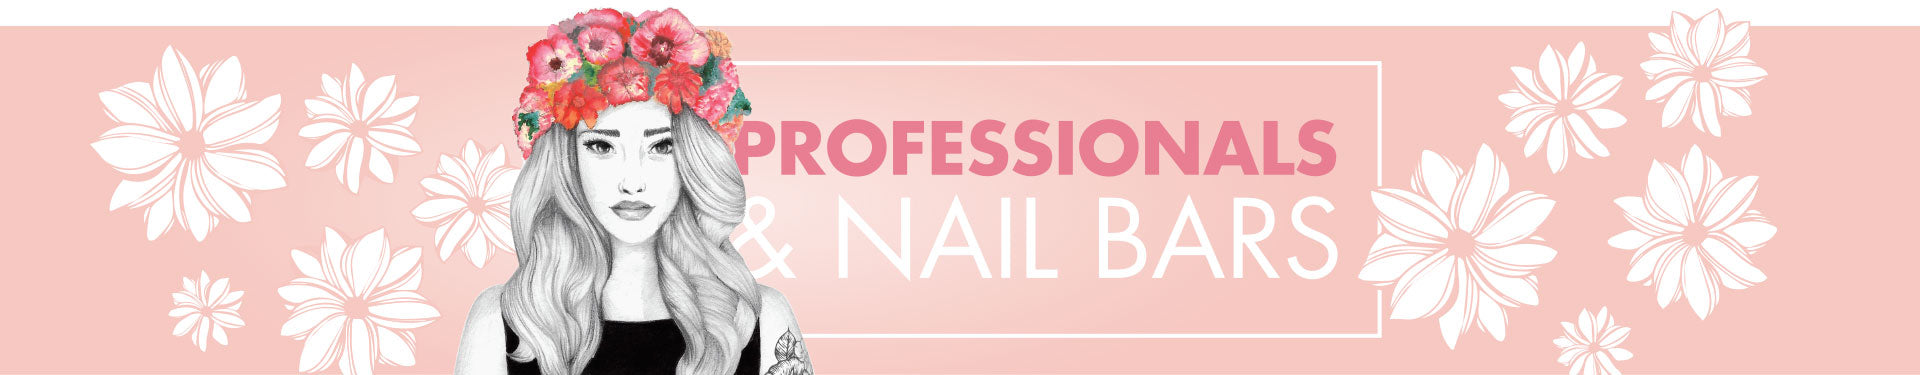 Contact us Professionals and Nail Bars